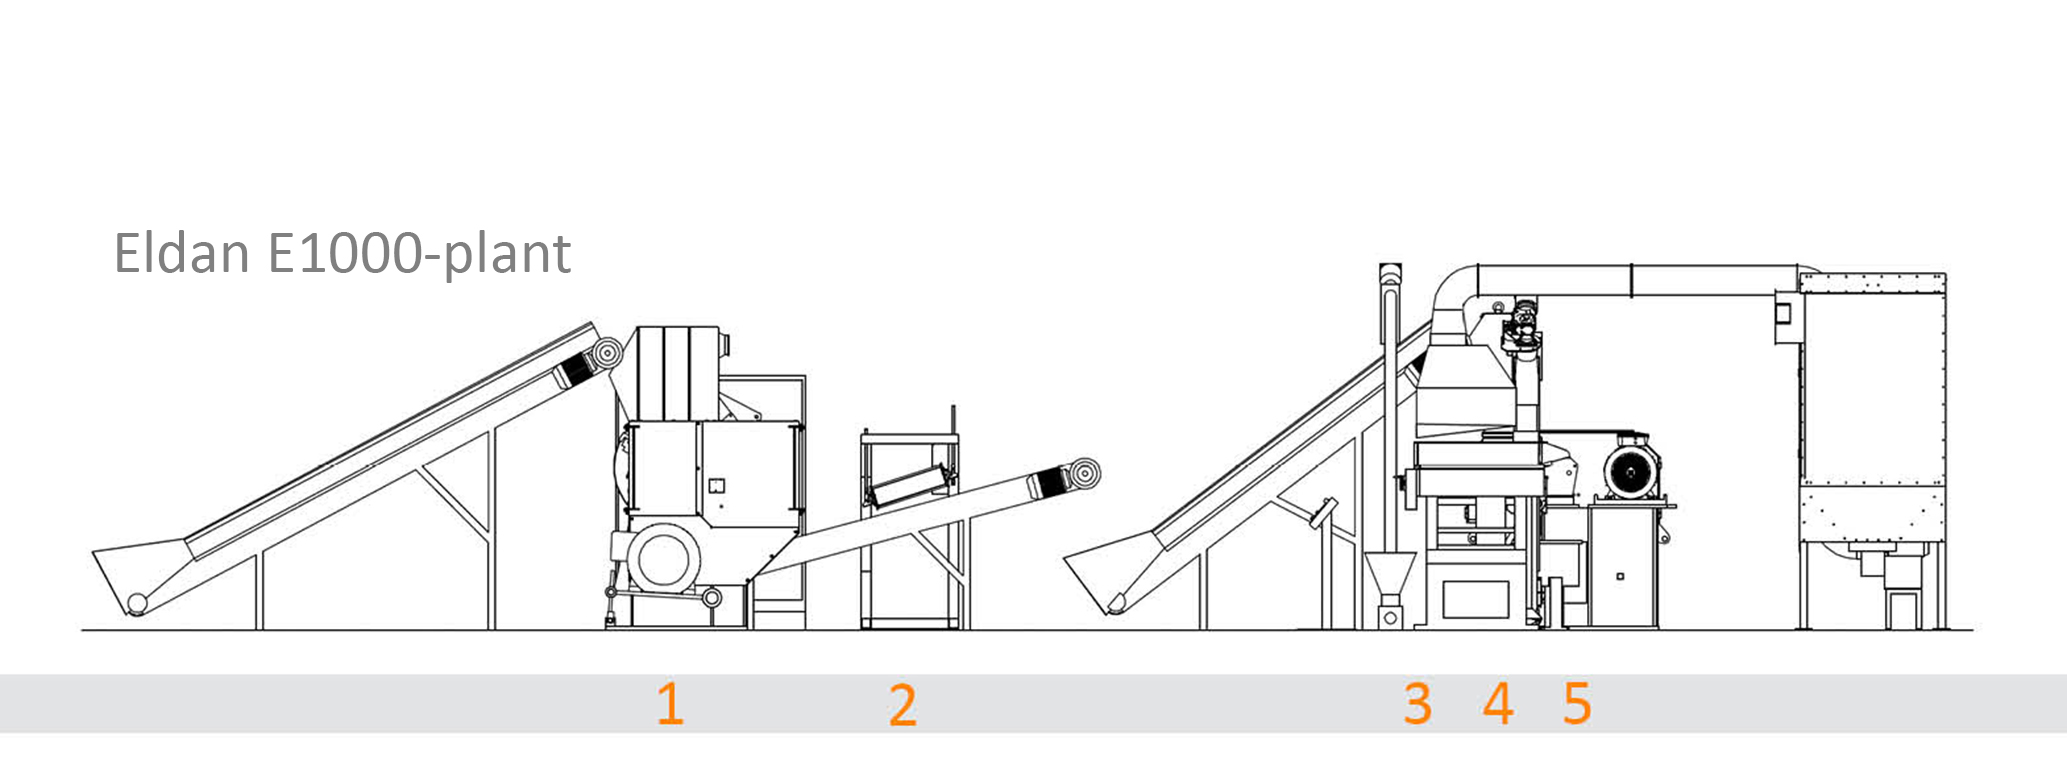 Cable recycling system and machines - sketch. E1000C